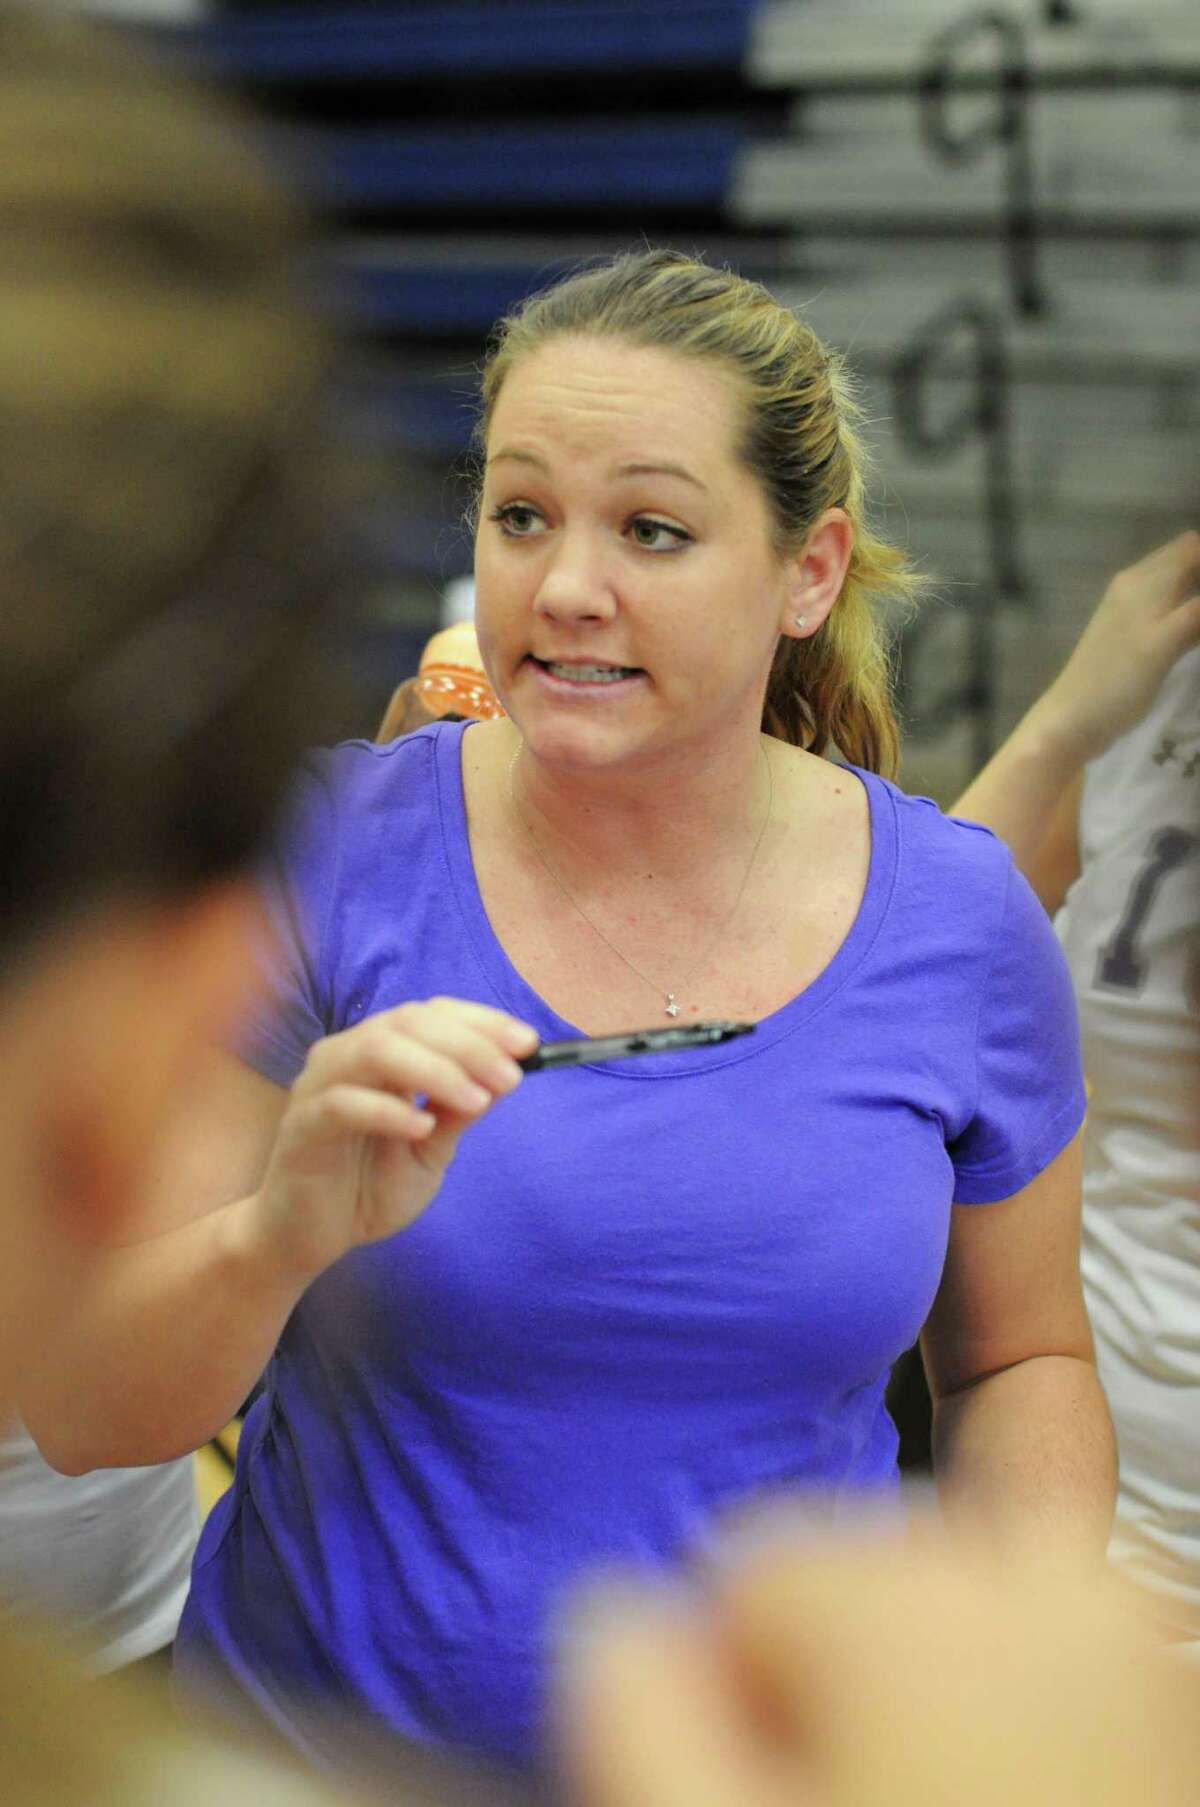 Ridge Point volleyball coach Tina McCorkle on 9-7-12 in a District 22-4A volleyball opener at Tomball Memorial. Ridge Point defeated Tomball Memorial 25-22, 29-27, 22-25, 12-25, 15-10.